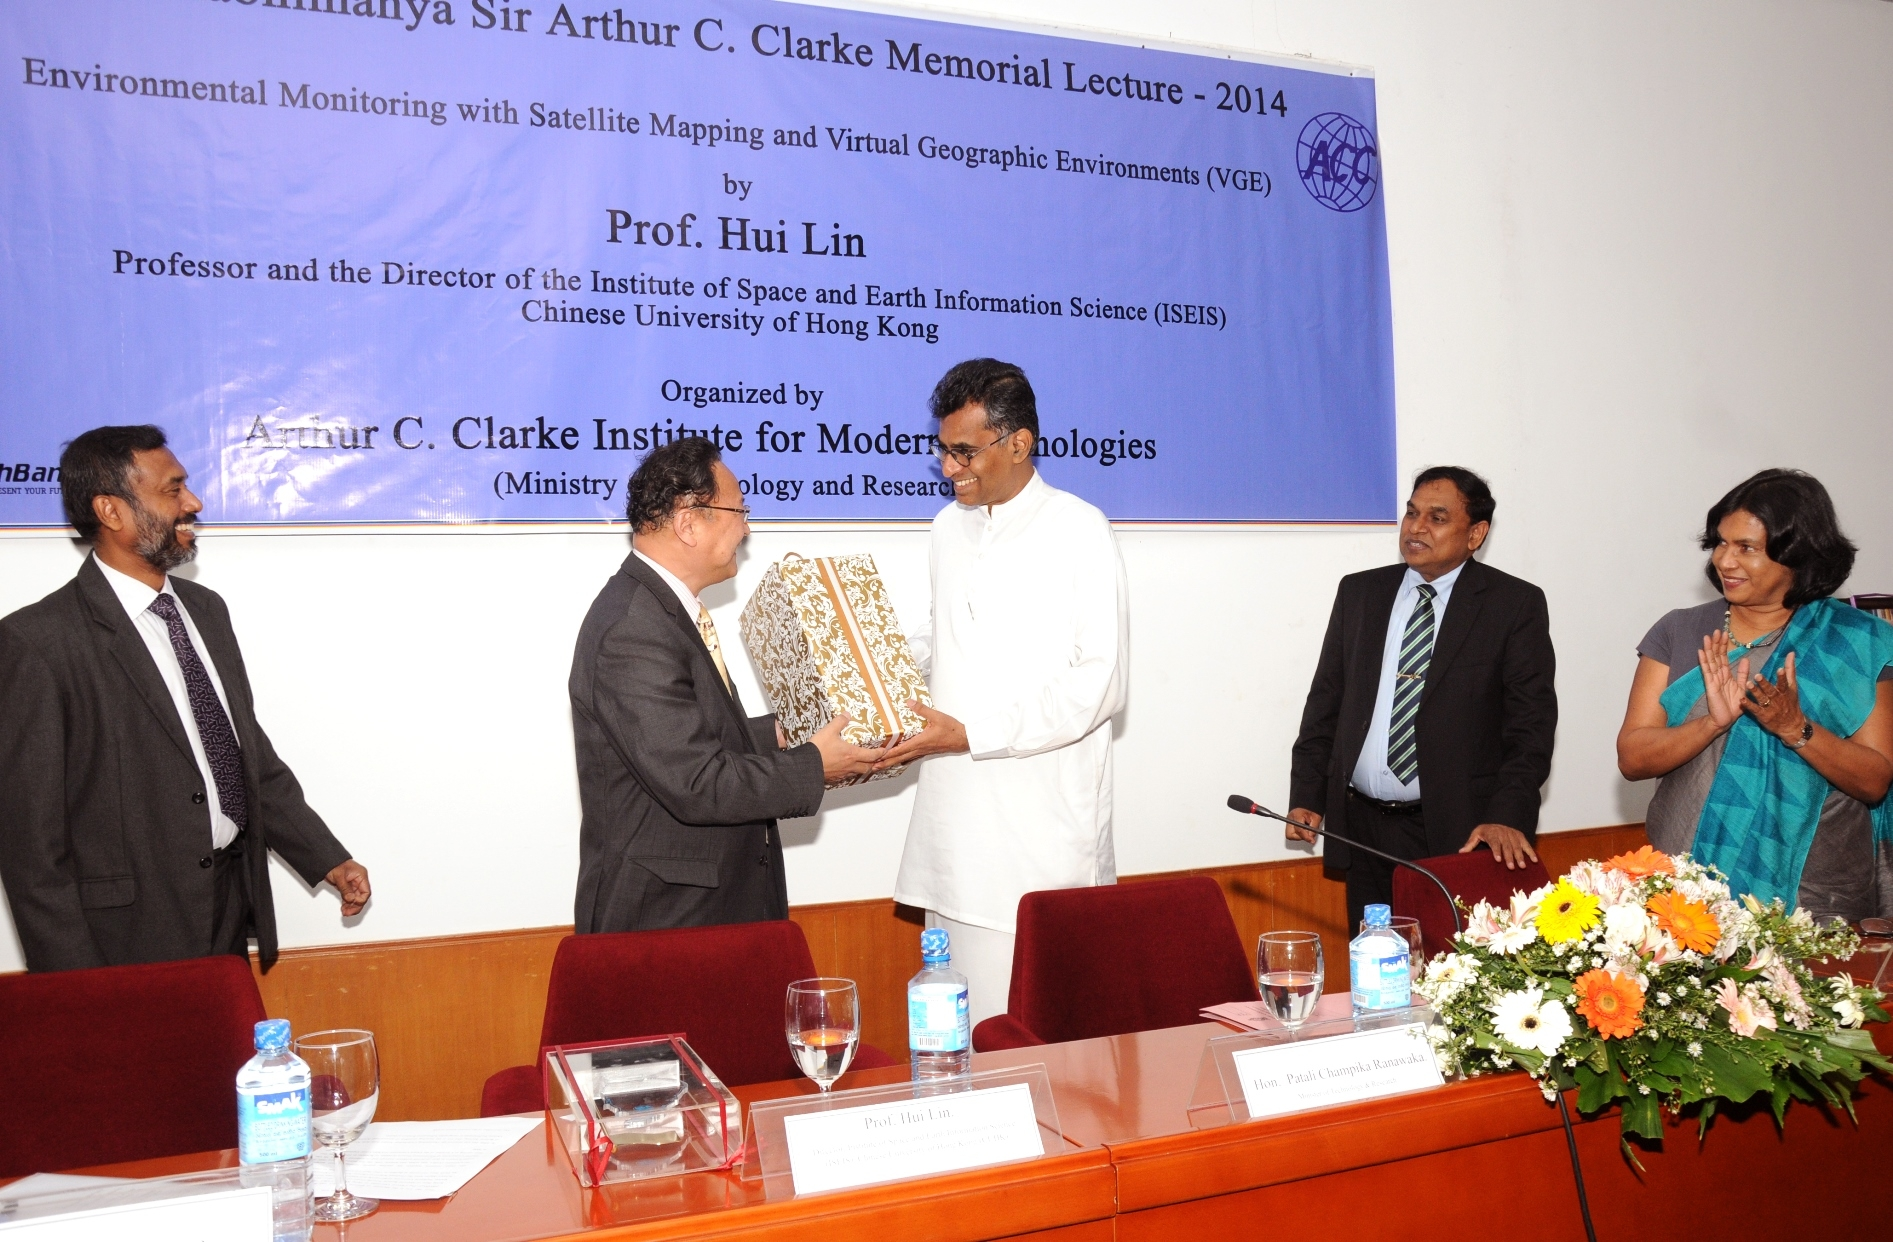 Mr. Patali Champika Ranawaka, Hon. Minister of Technology and Research in Sri Lanka presents a souvenir to Prof. Lin Hui.